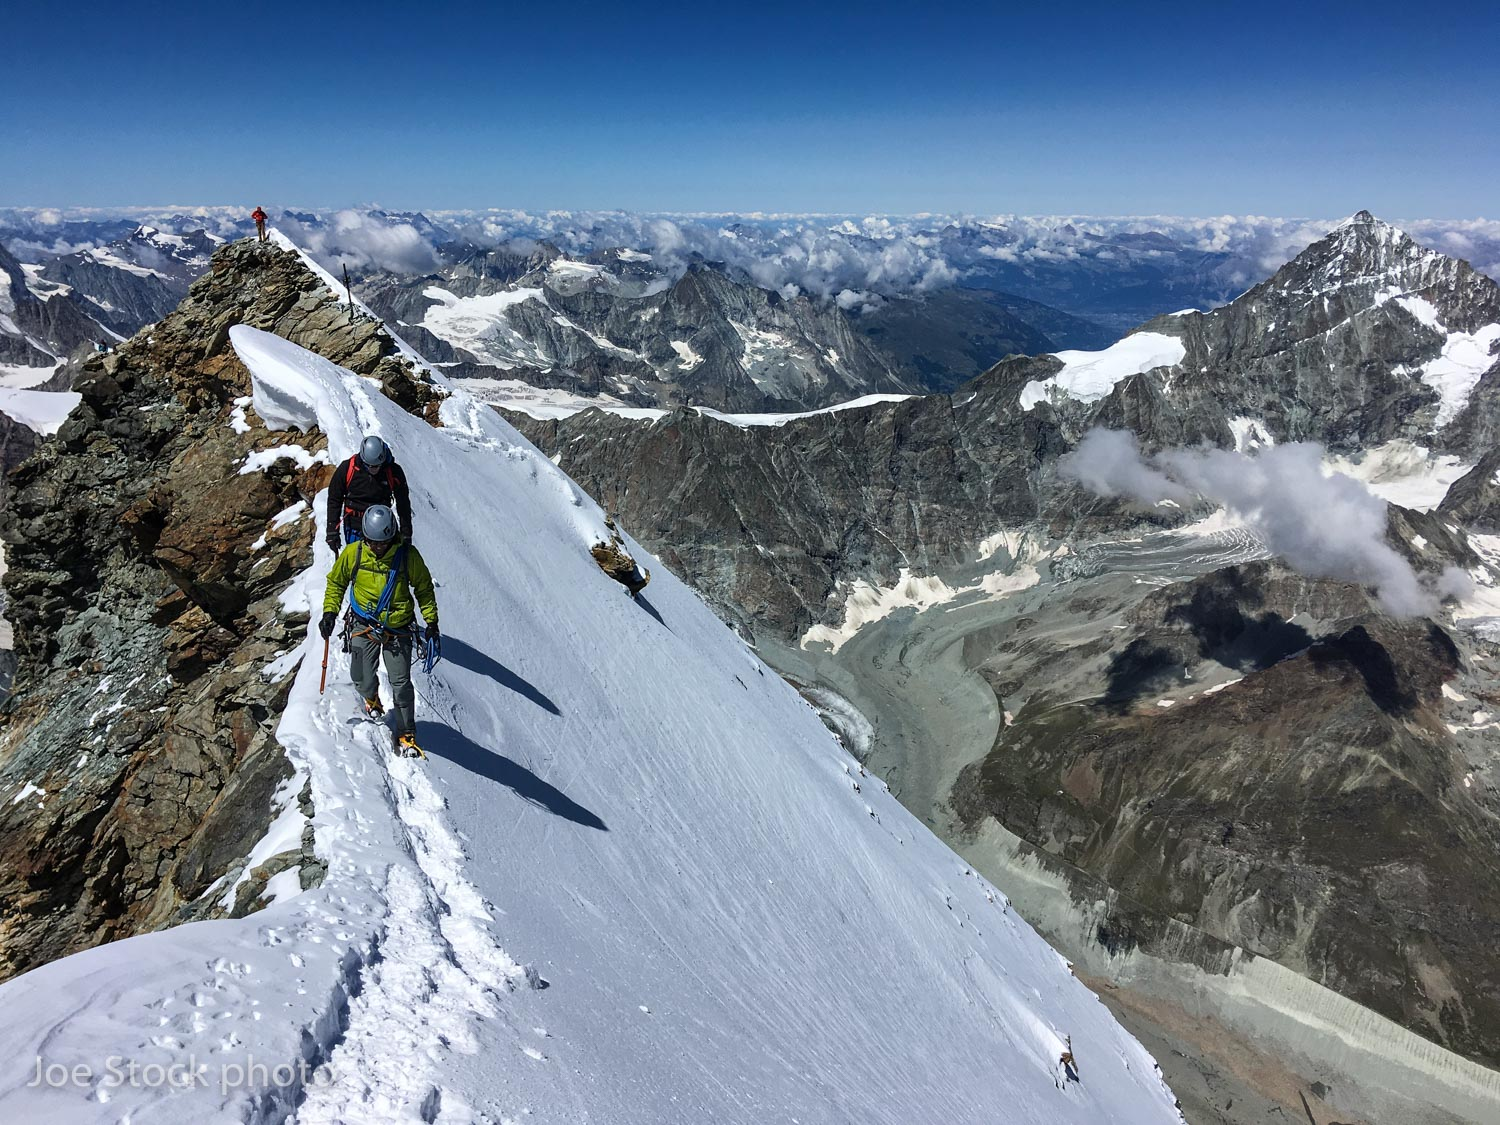 Andrew Wexler and Peter Gent returning from the Italian summit of the Matterhorn.